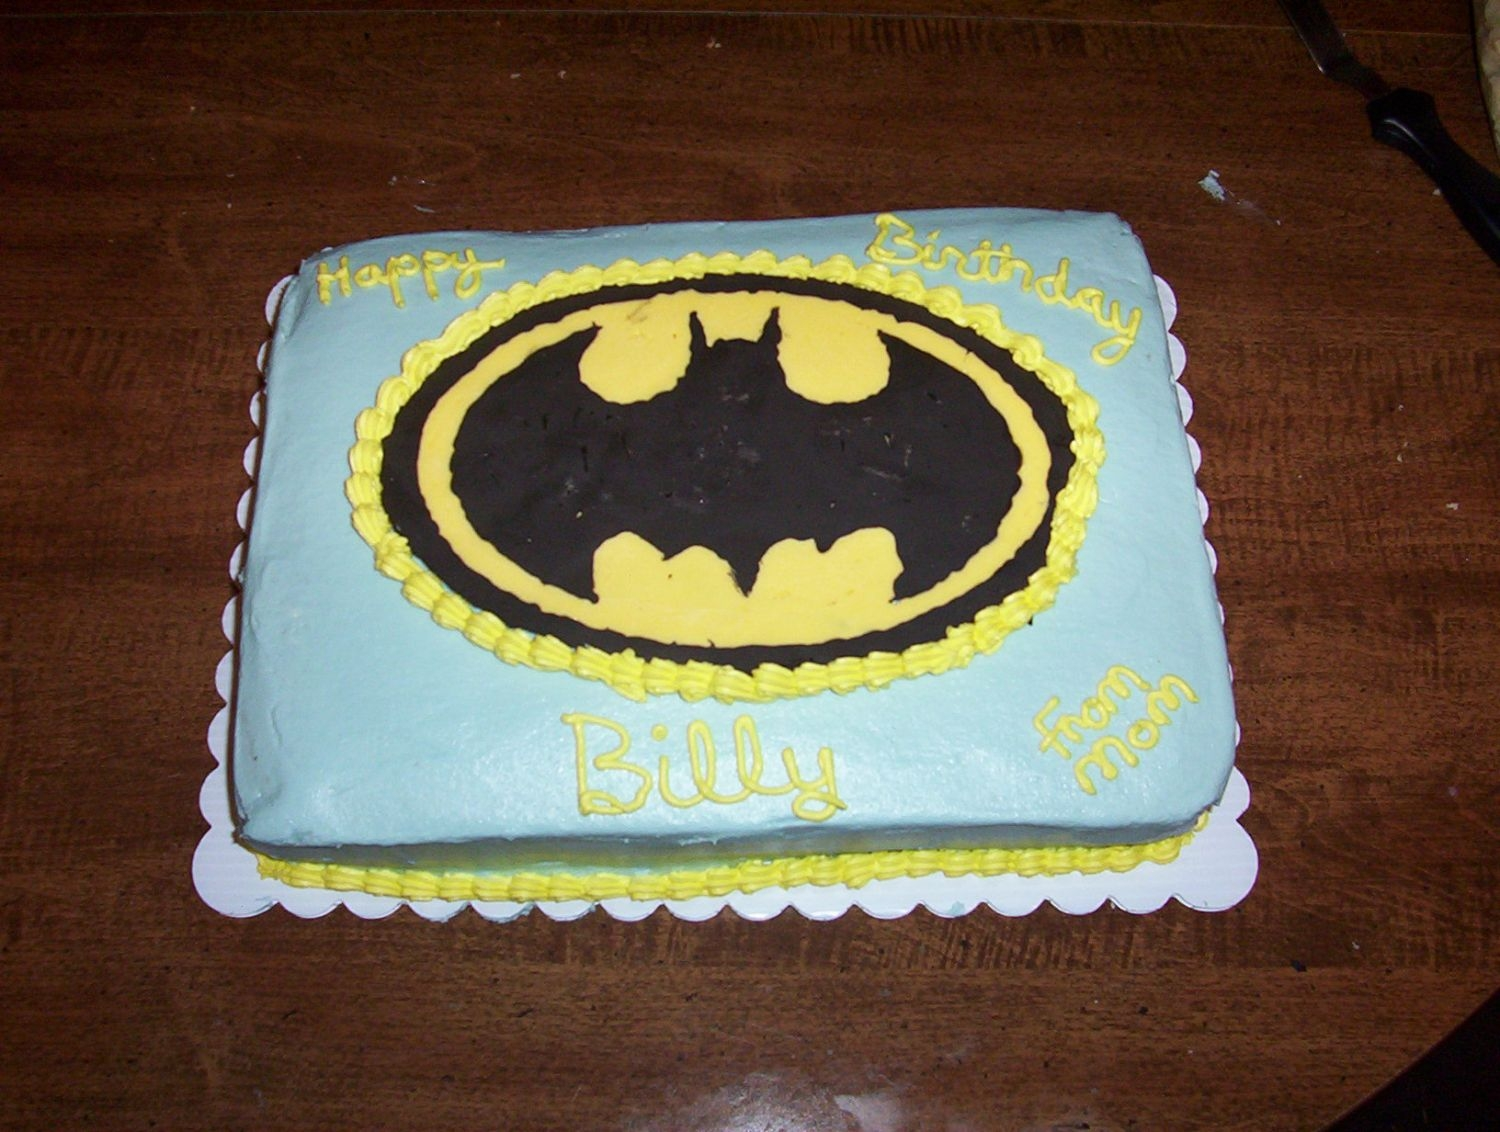 Batman Cake batman cake made for 10 year olds birthday.It was for the same women who bought the pink cake, she asked me last night at around 8:30 if it...